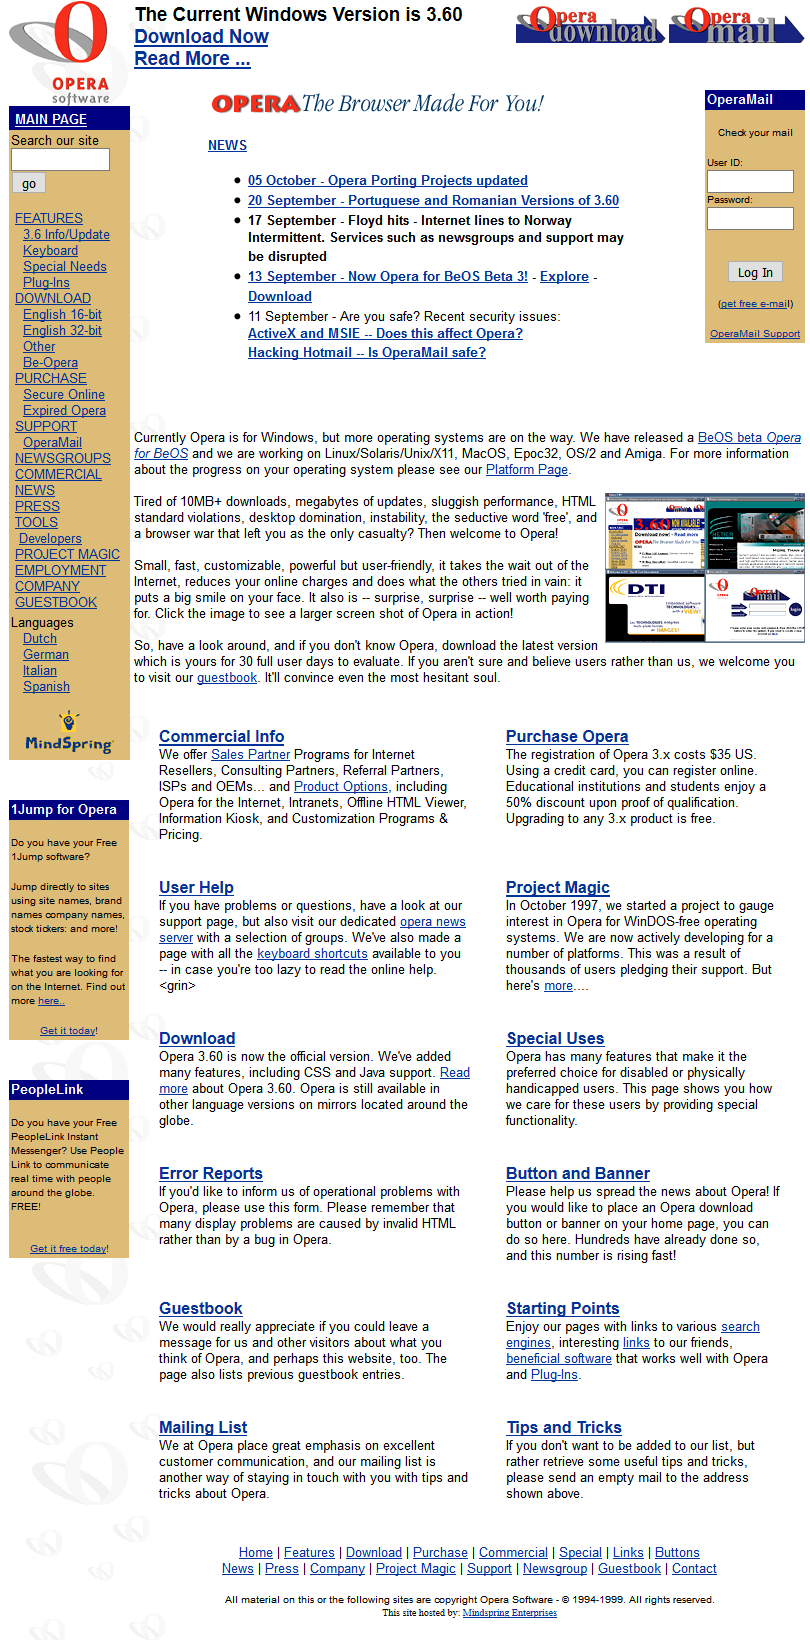 Opera Software in 1999